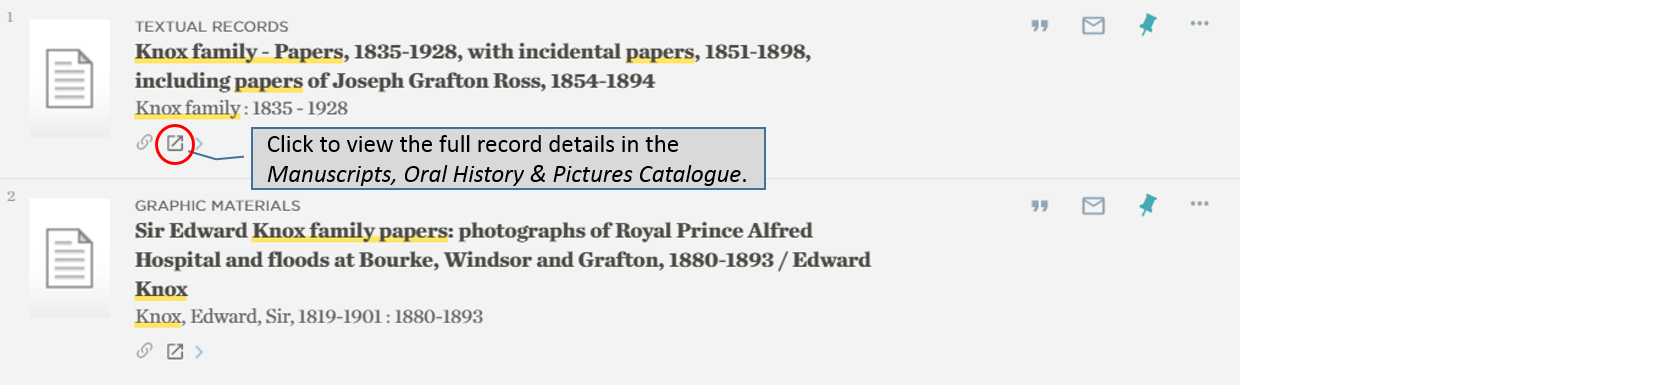 Catalogue – linking to full record in Manuscripts, Oral History & Pictures Catalogue